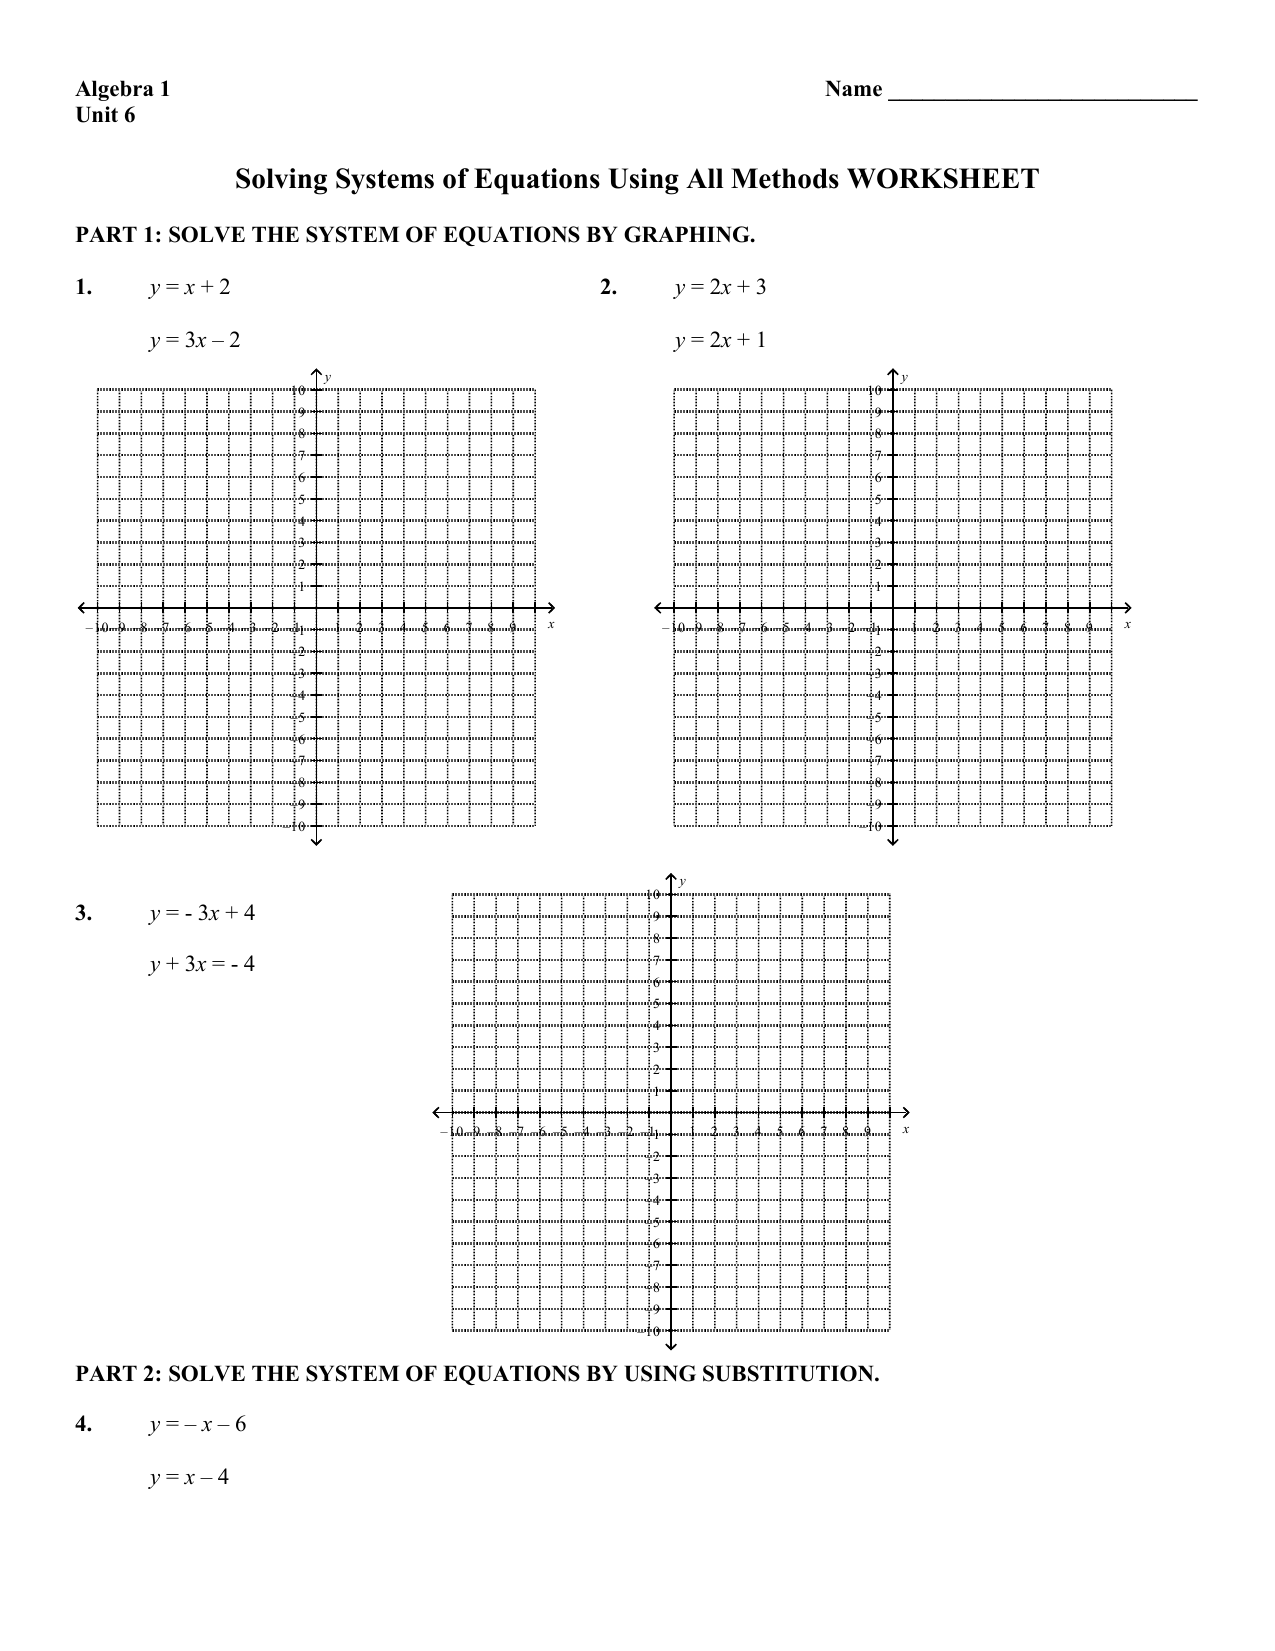 Worksheet Answer Keys Mathconceptualized